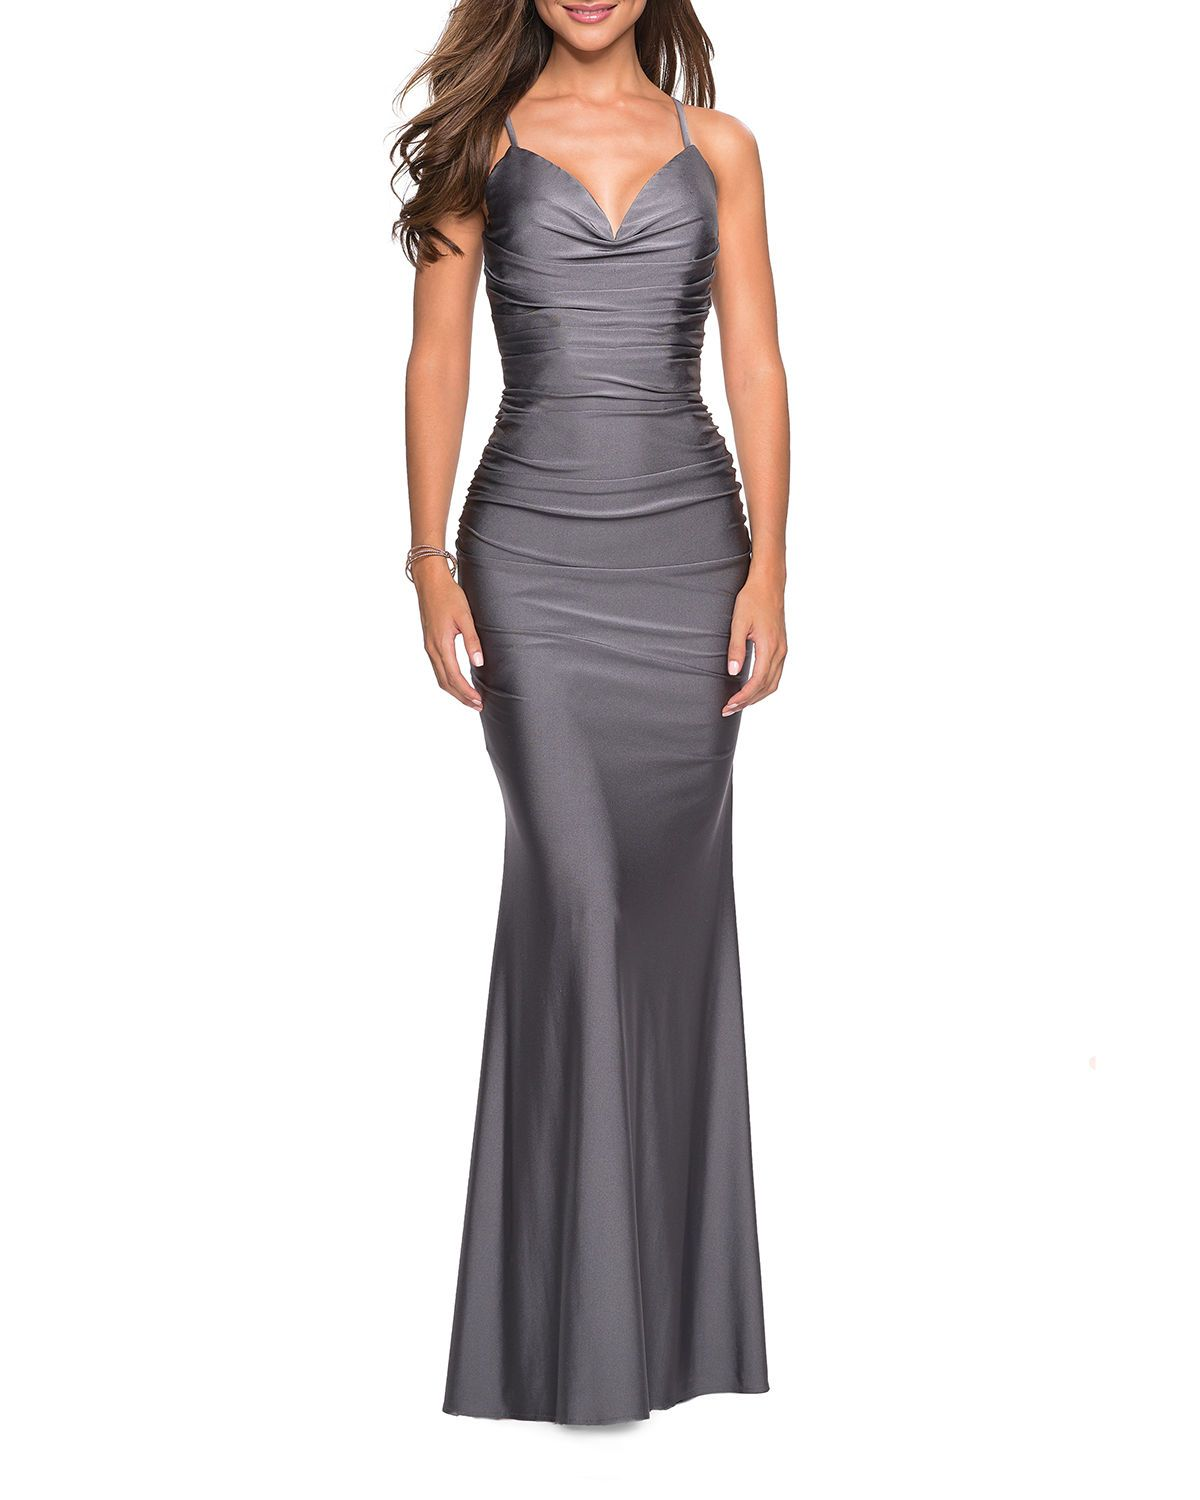 La Femme Sweetheart Sleeveless Ruched Jersey Gown with StrappyBack - Womens evening gowns, Top design fashion, Trumpet gown, Gowns dresses, La femme, Gowns - La Femme ruched jersey gown with open strappy back Approx  length 60L from shoulder to hem; 60L down center back Sweetheart neckline Sleeveless; thin straps Column silhouette Fulllength hem Slight train at back Lower back zipPolyester Spot clean Imported